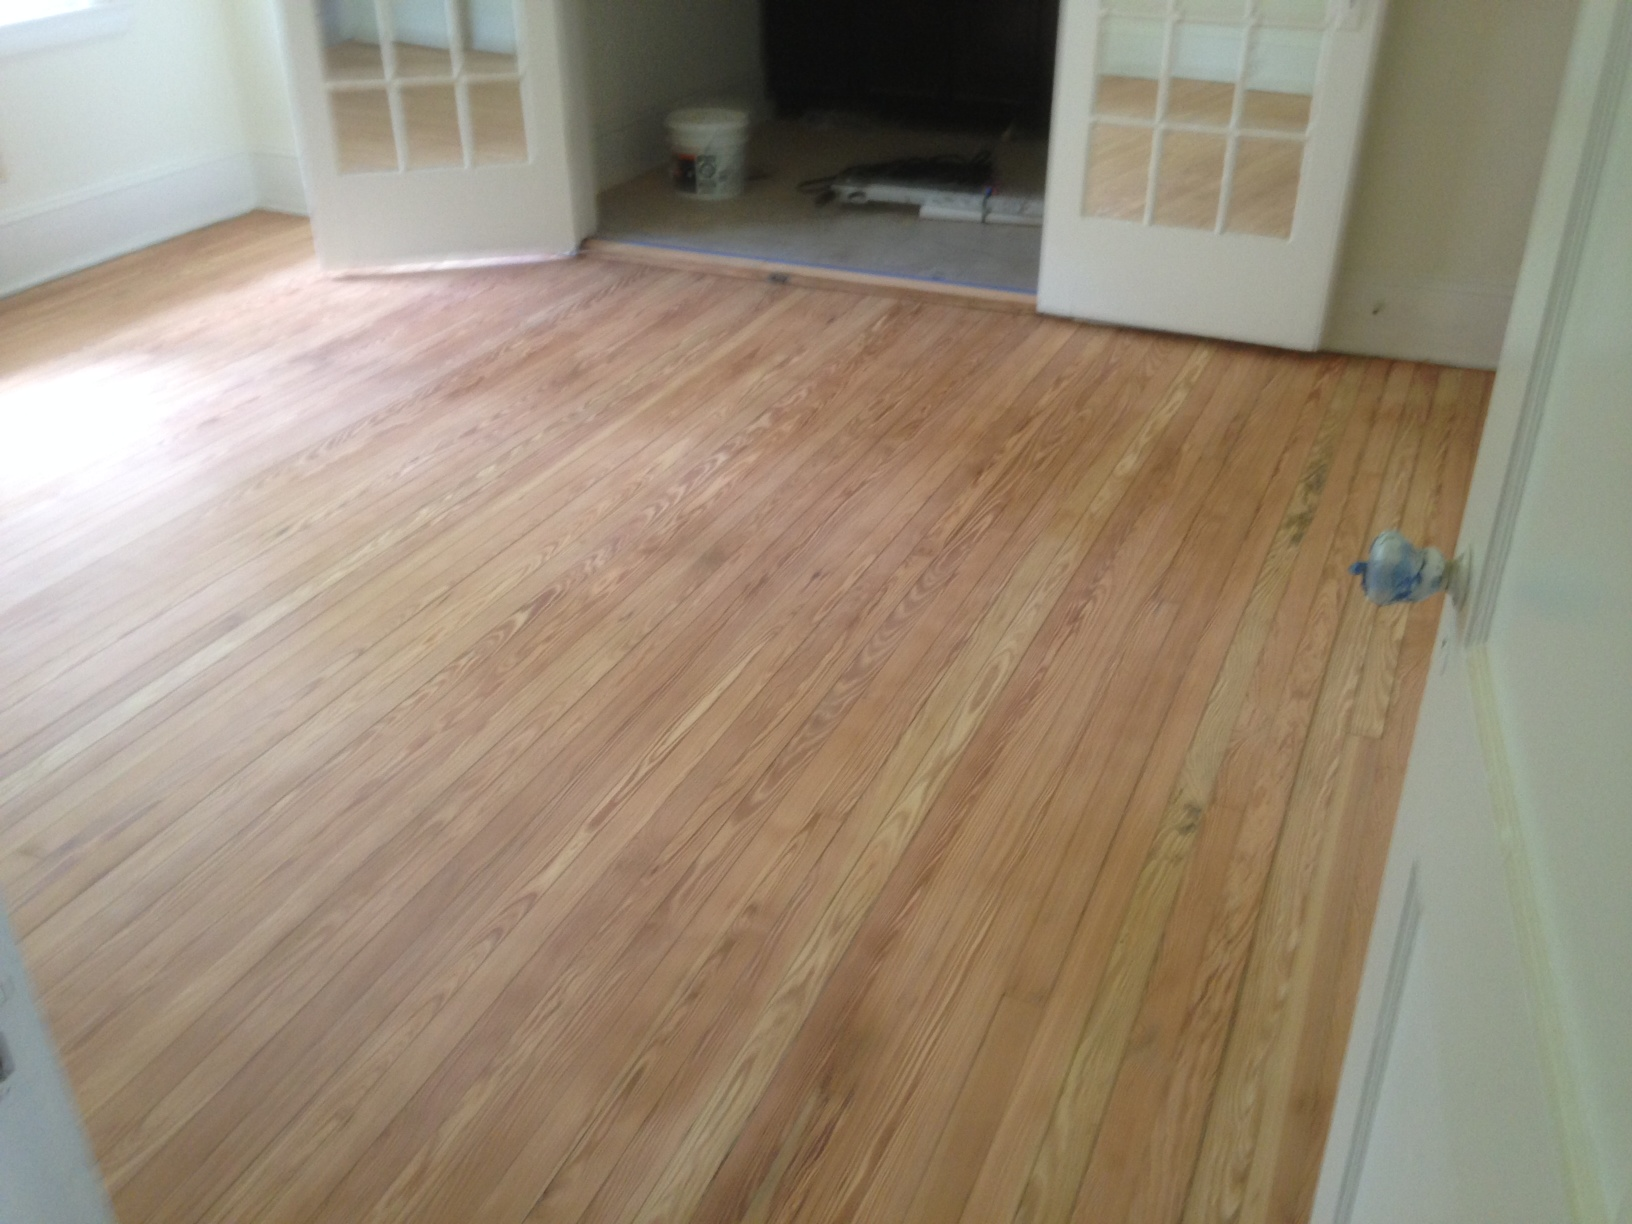 to wood refinish polyurethane staining how st pic hardwood home cost much inspiration does of floor coat picture stain sanding design floors stunning and it unbelievable sand